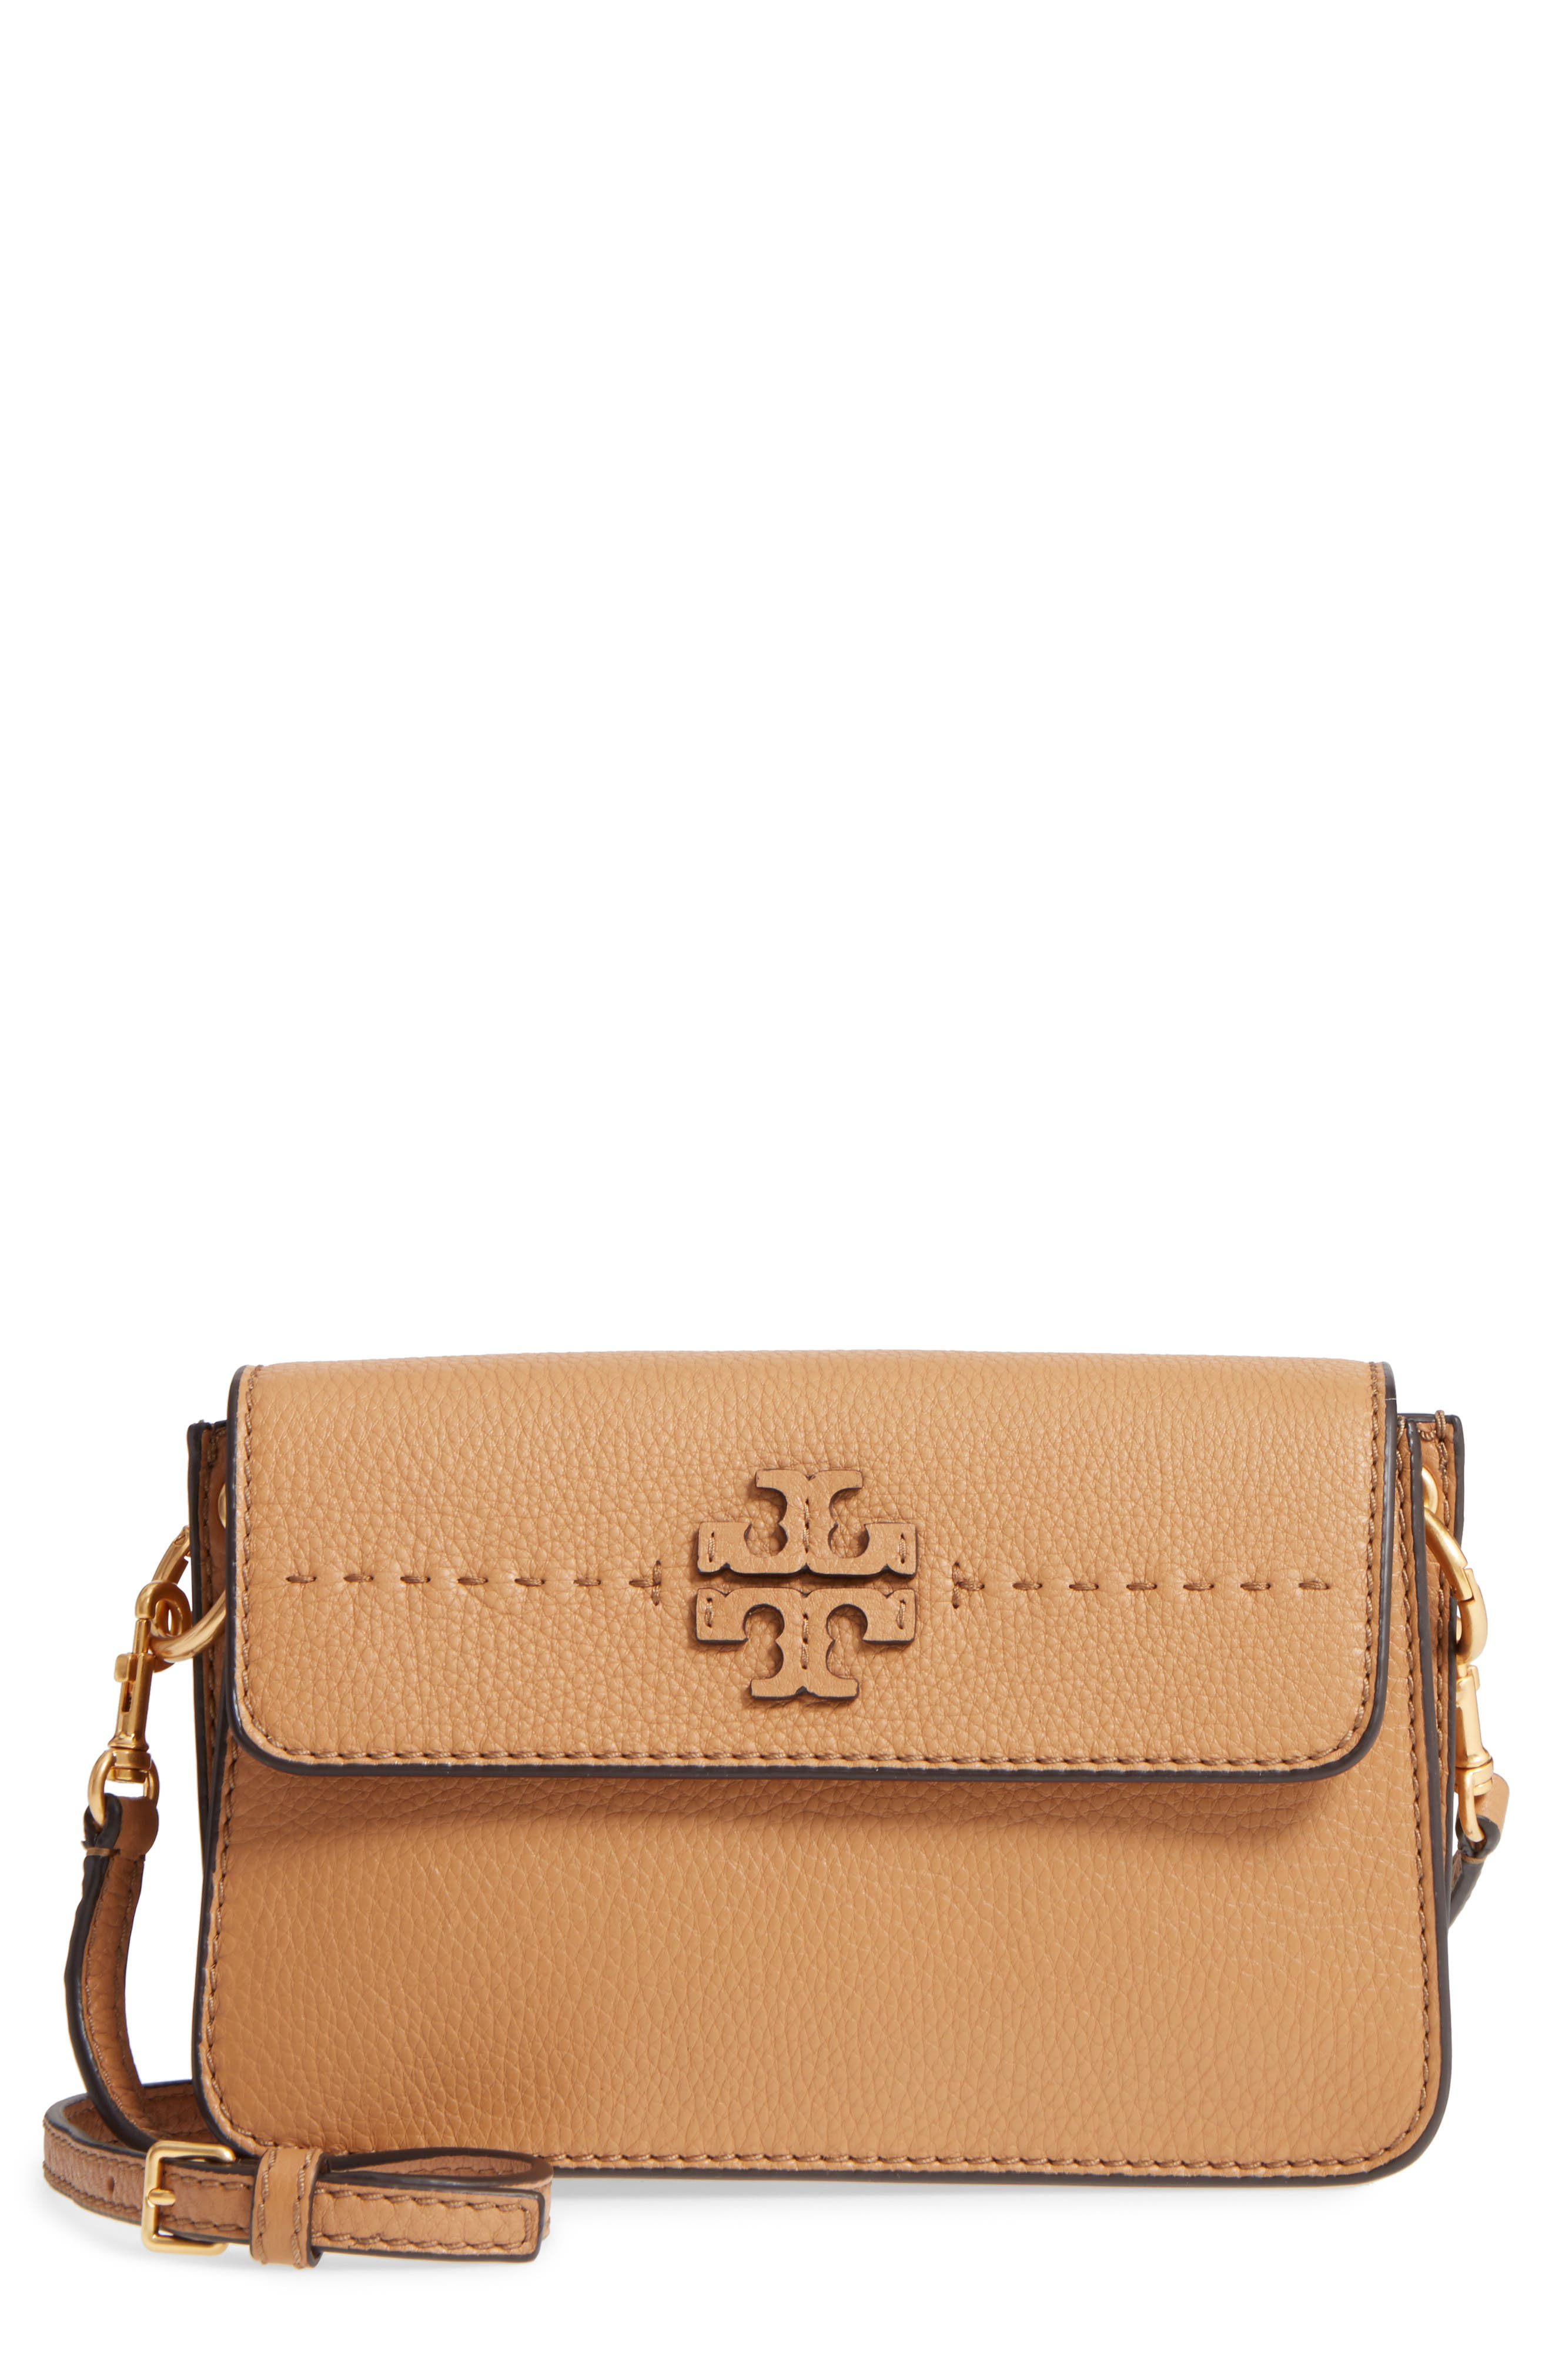 Tory Burch McGraw Leather Shoulder Bag